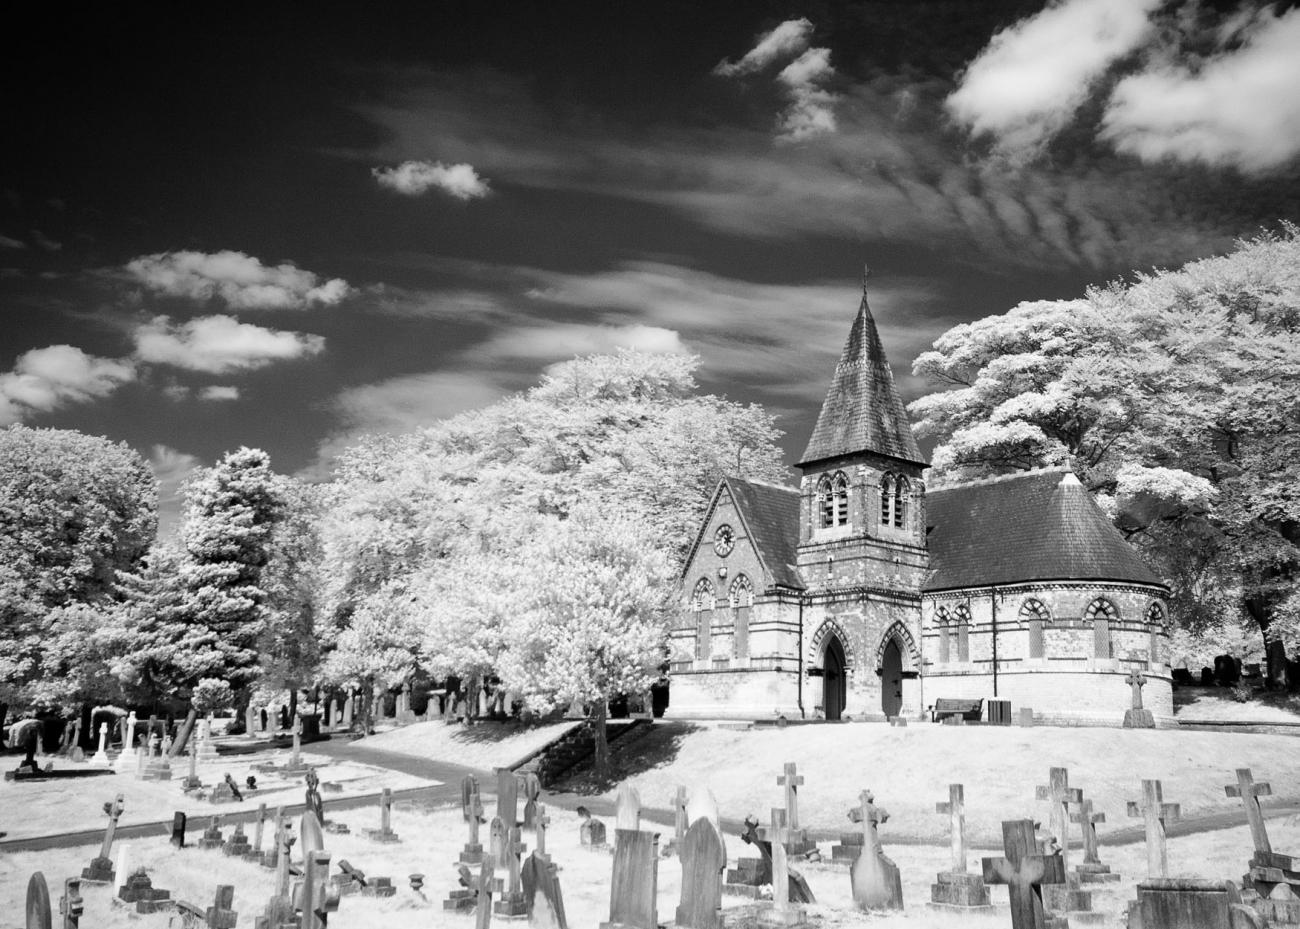 Cemetery  in the Sunshine  - IR